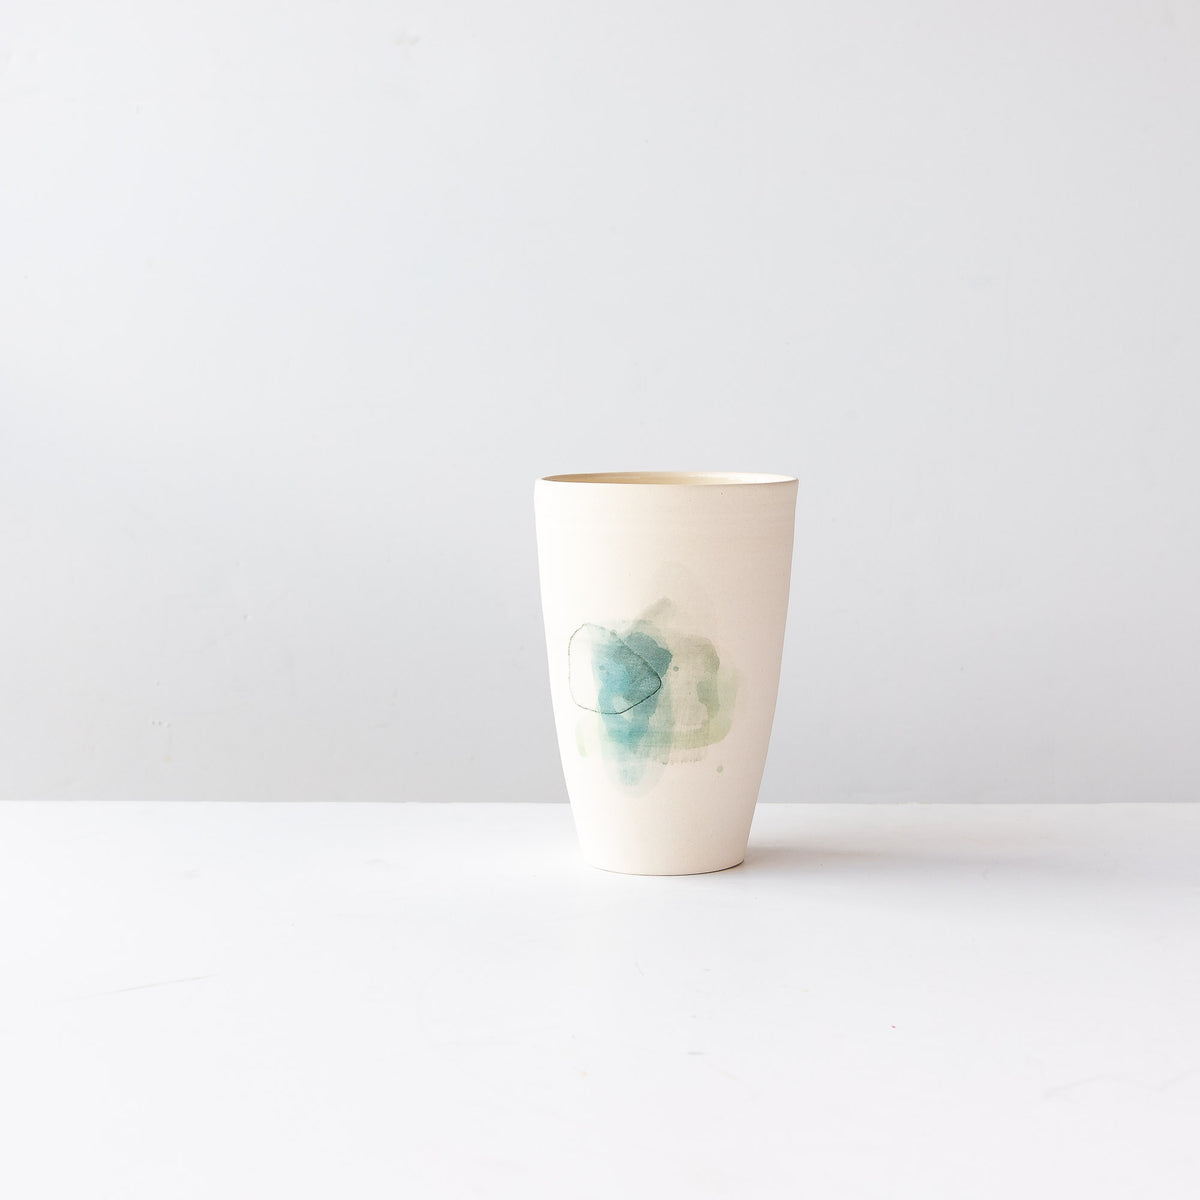 Hand Painted Porcelain Vase - Sold by Chic & Basta